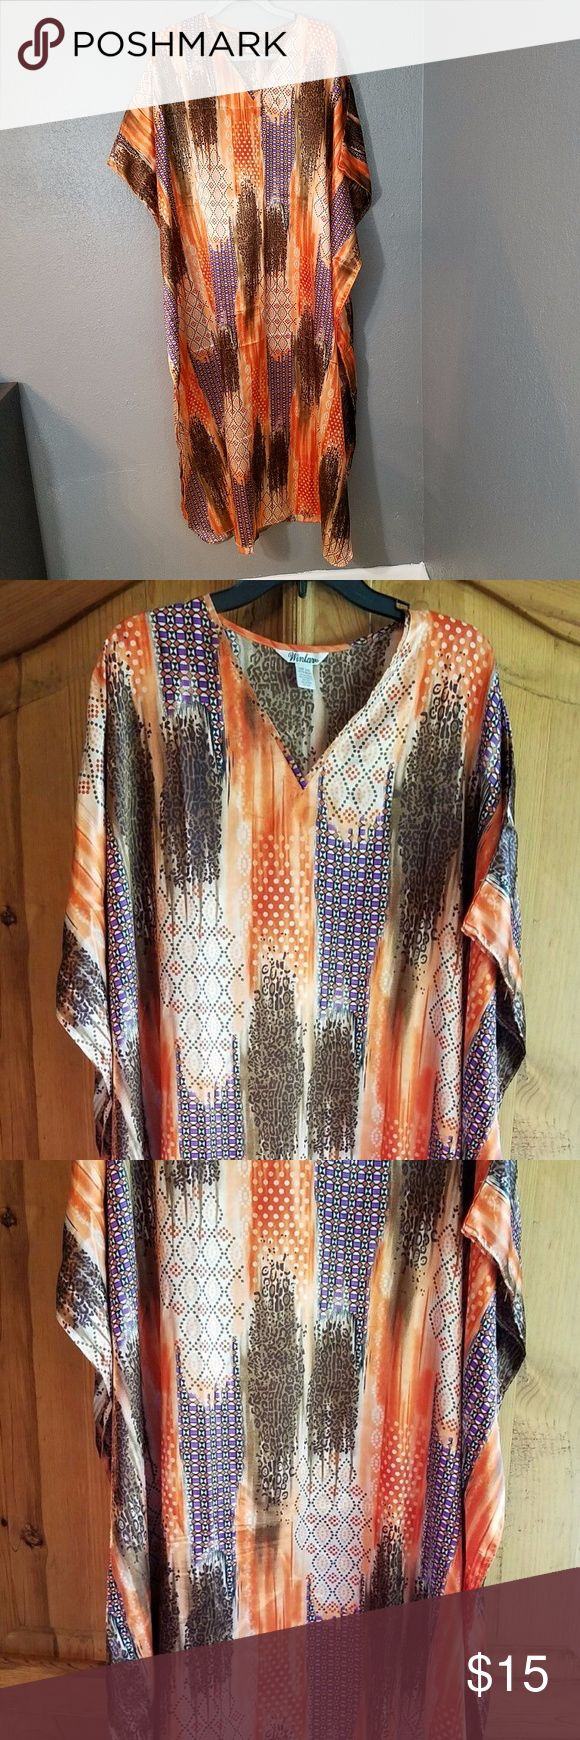 "Winlar Caftan O/S one size orange brown animal WINLAR CAFTAN Muumuu dress. It is orange and browns. Has several different patterns, please take a look at the pictures.  Some animal print, dots, and more.  It is One size fits most. In gently used good condition. No rips or stains. This is one of three that I have listed. Please take a look at my store.  About 42"" shoulder to shoulder.  Neck to hem is about 52"".  There is a slit on both sides at the bottom of about 18"".   There is a seam down…"